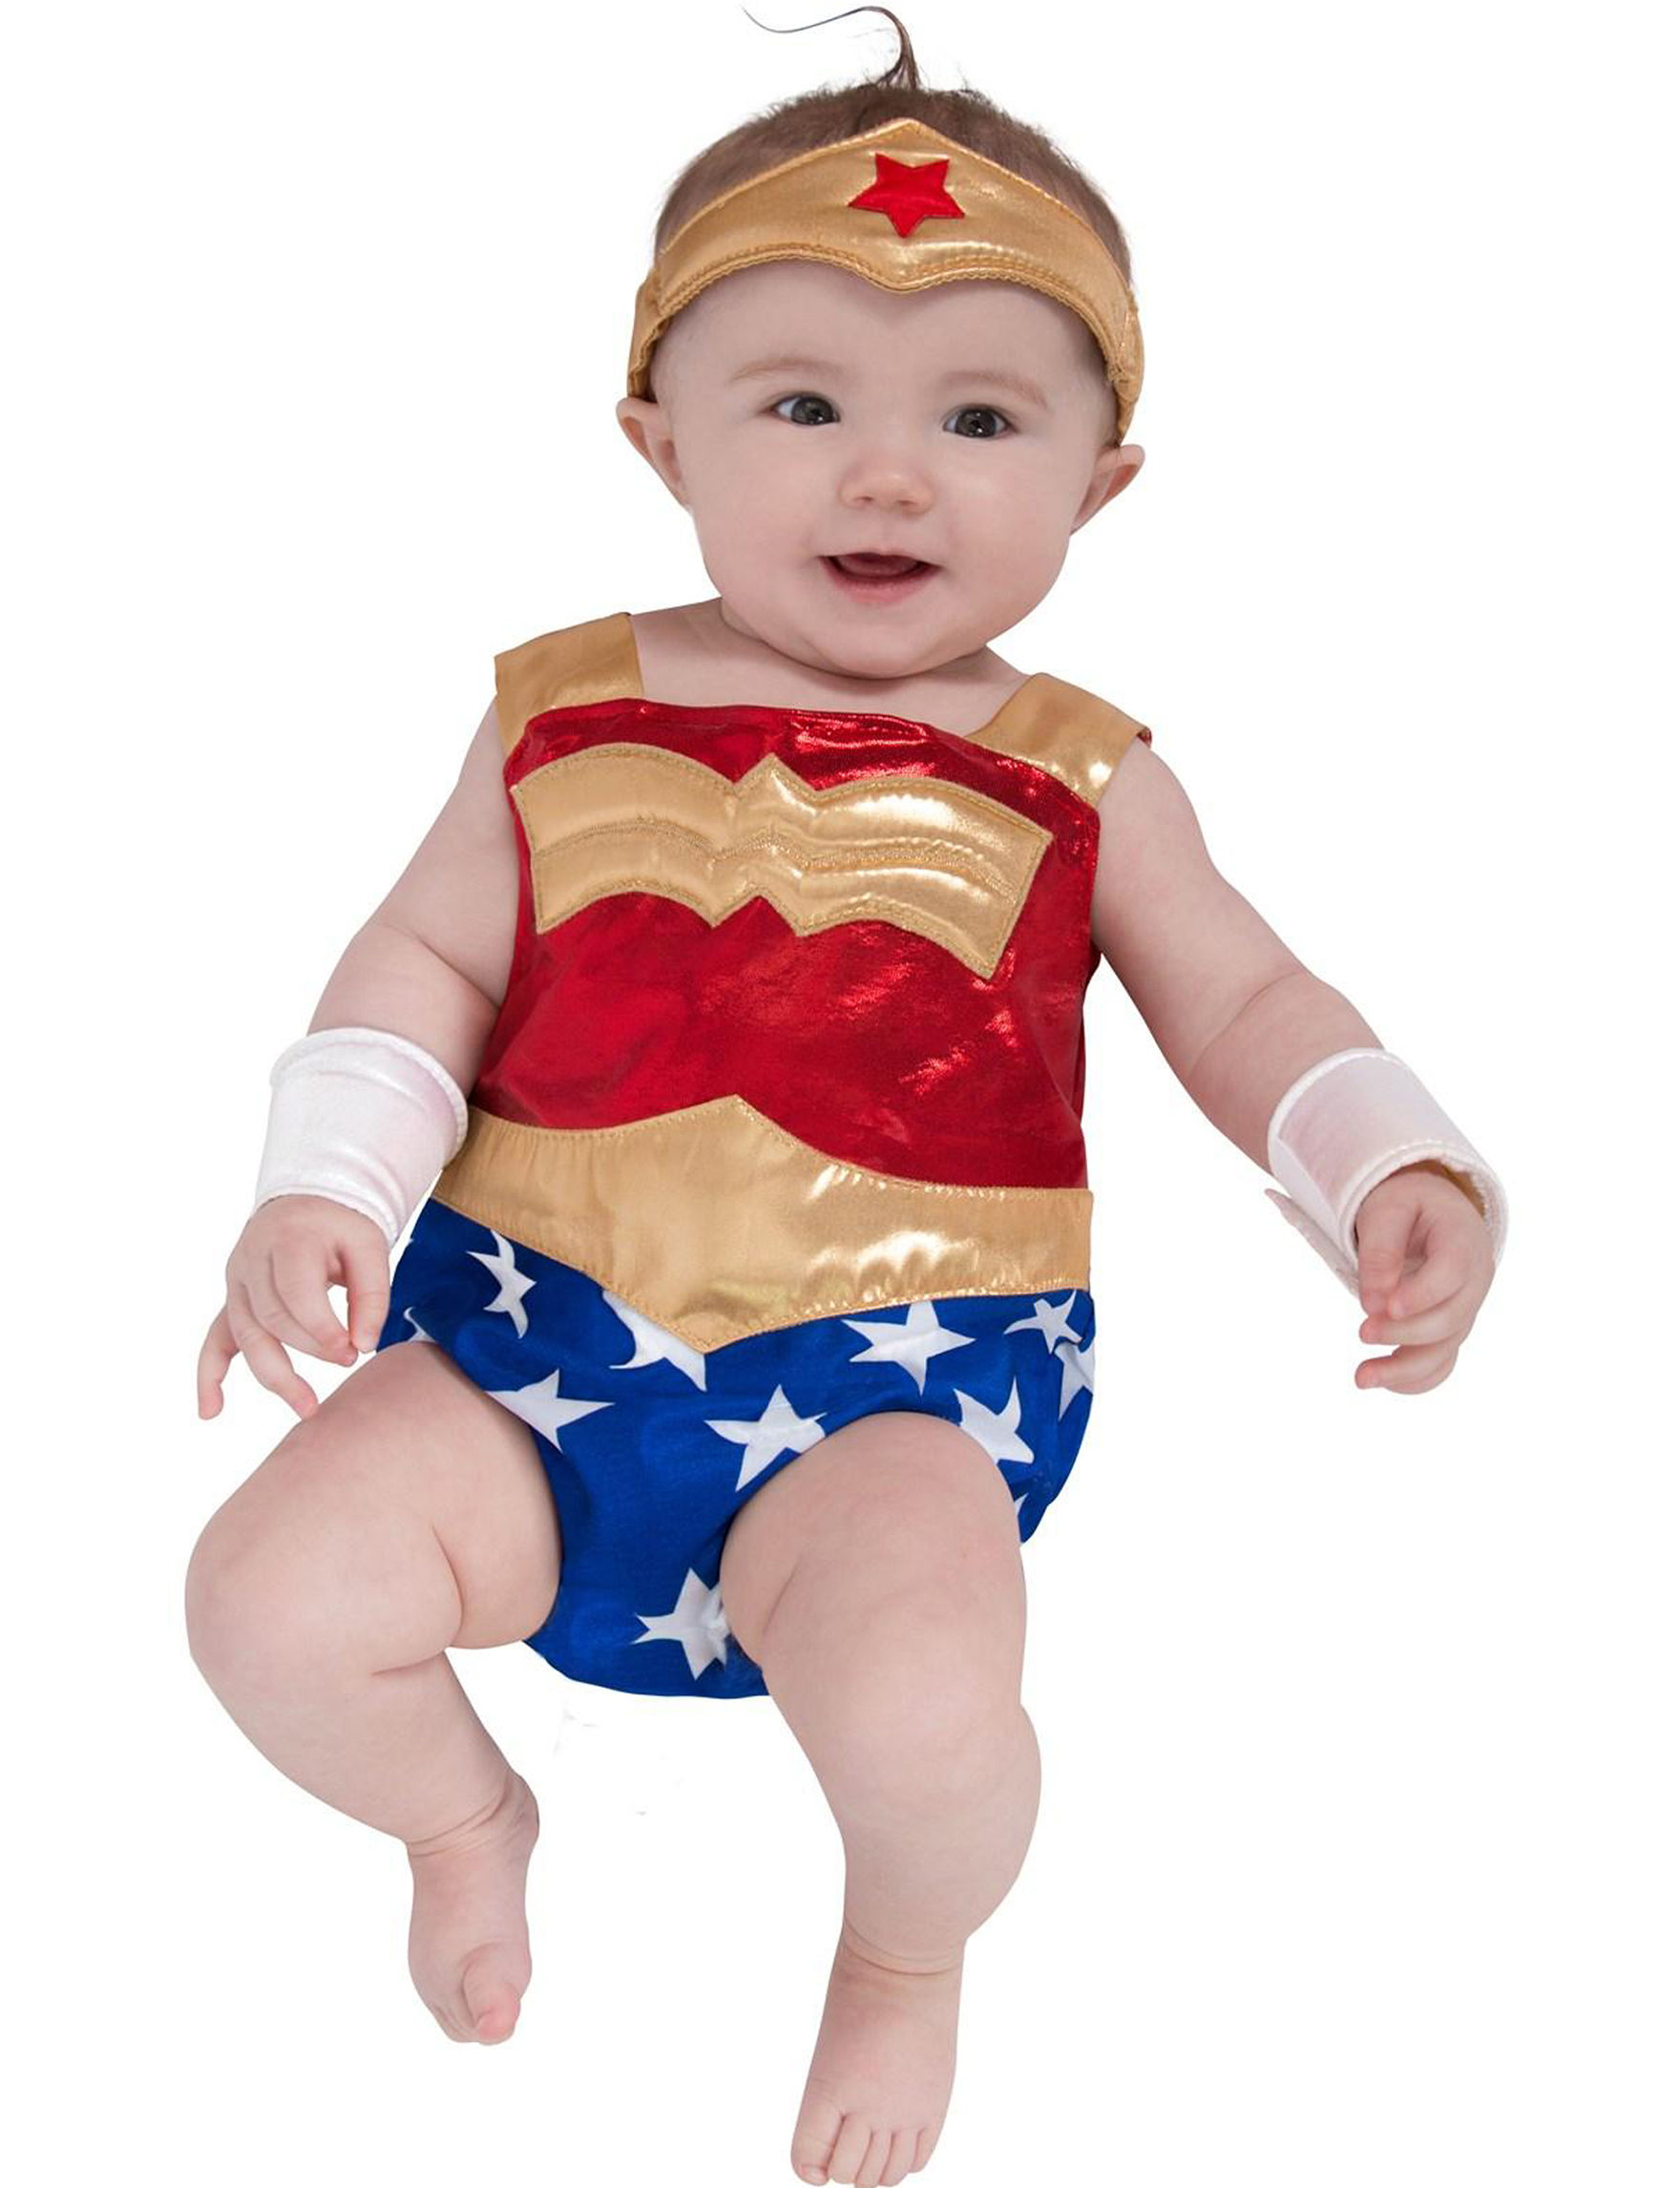 DC Comics Wonder Woman Infant Costume  sc 1 st  Stage Stores & 4-pc. DC Comics Wonder Woman Infant Costume | Stage Stores